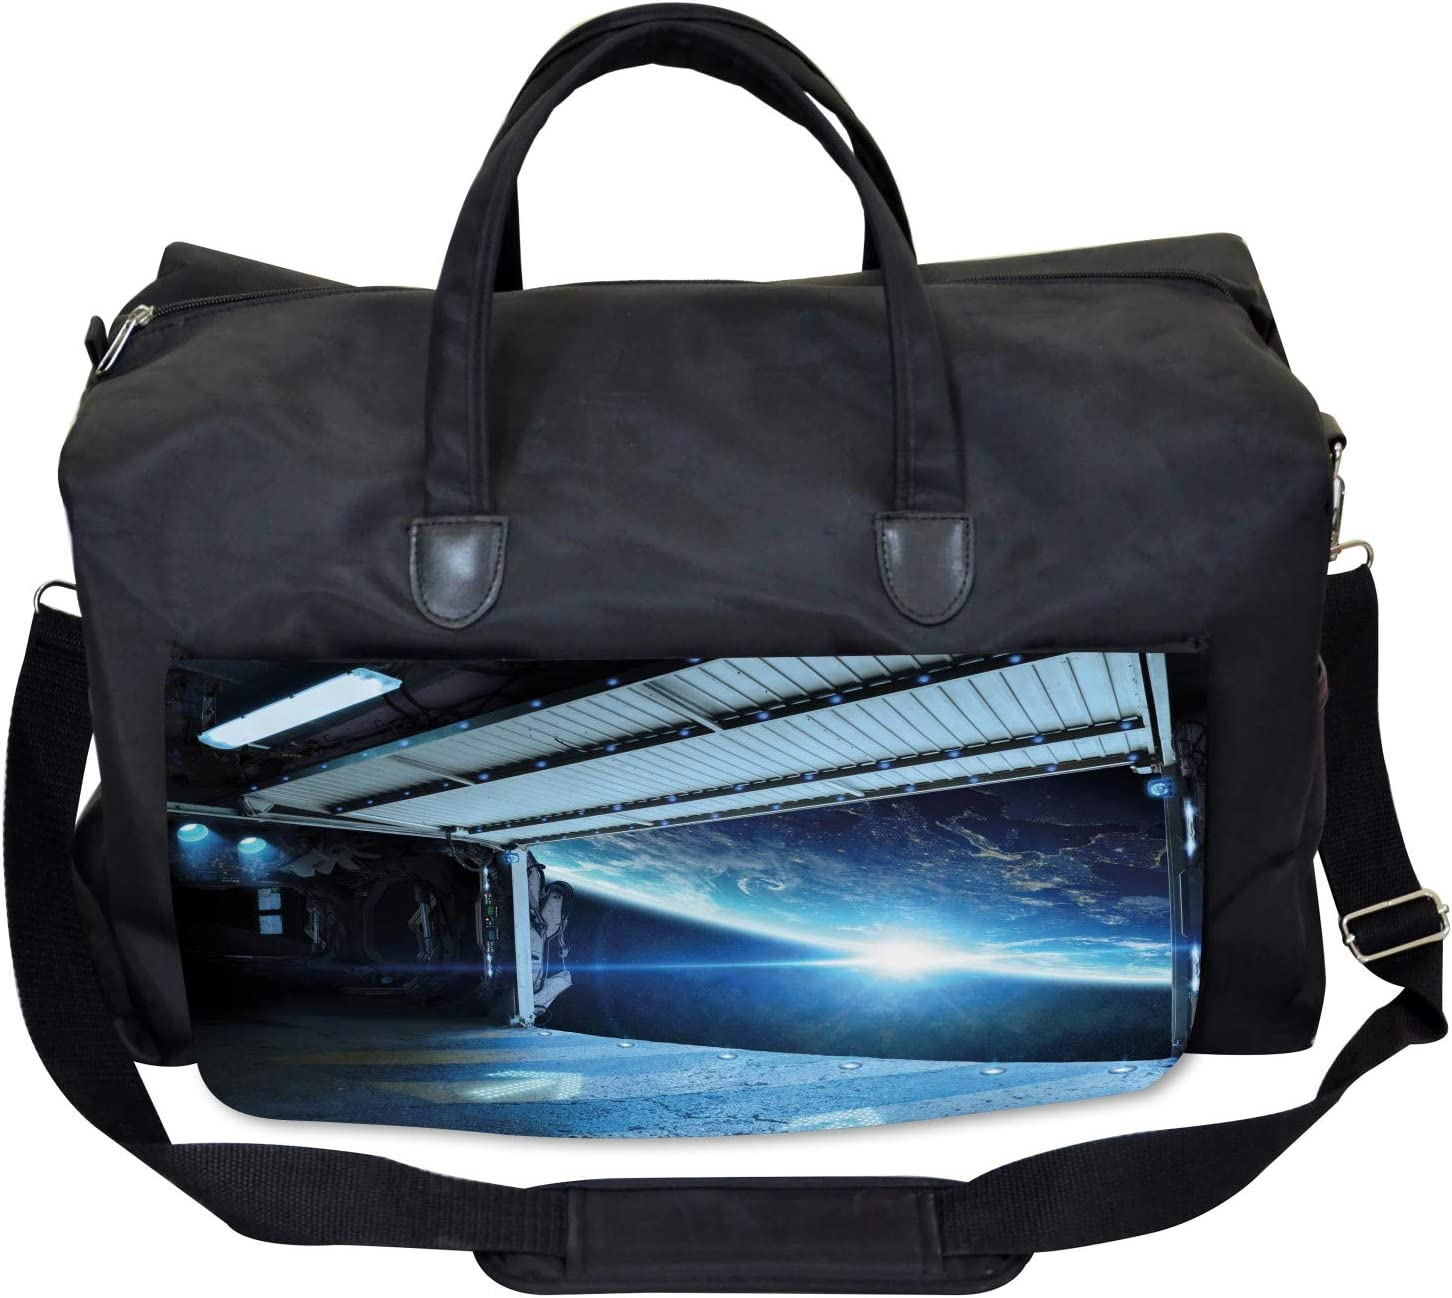 Coral Reef Aquarium Ambesonne Underwater Gym Bag Large Weekender Carry-on